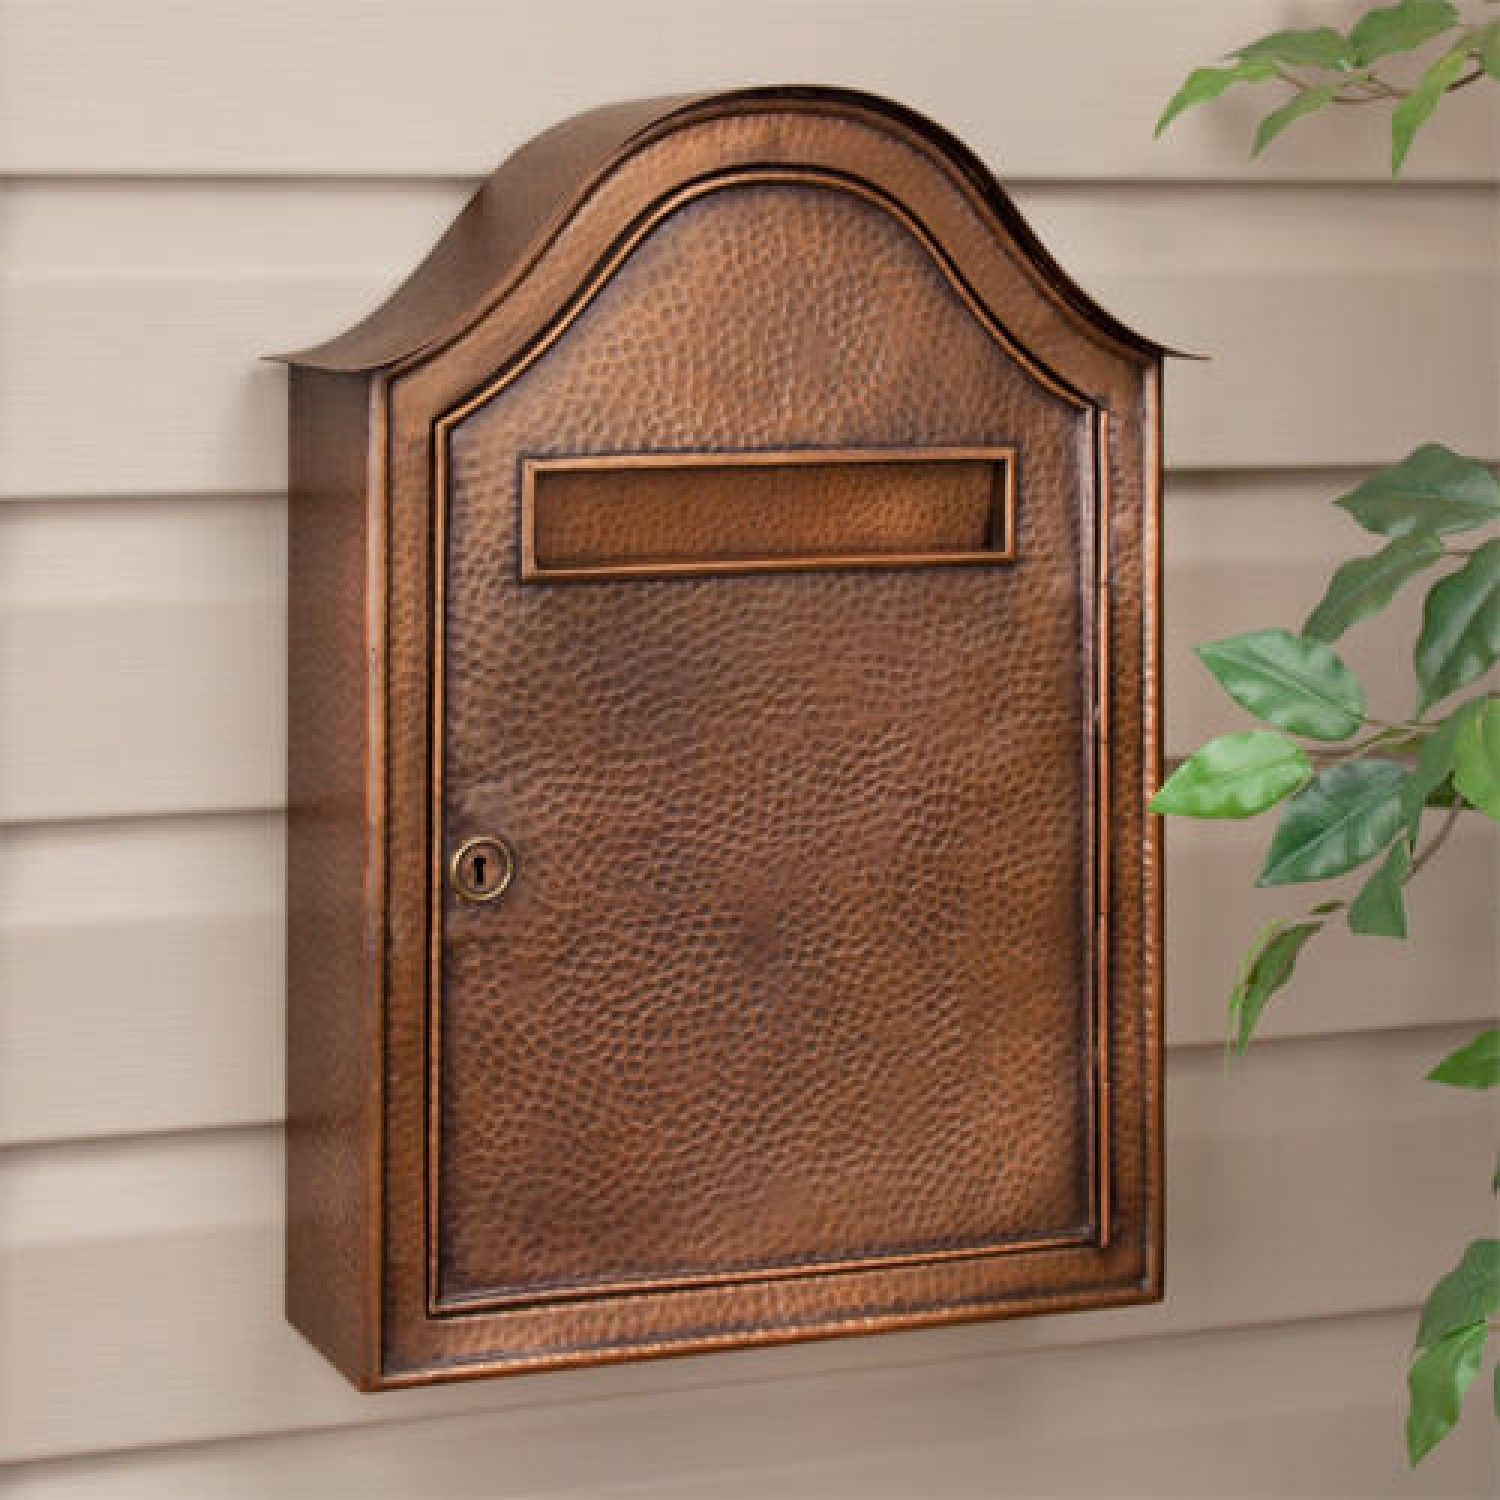 Large Hammered Copper Locking Wall Mount Mailbox Antique Copper Mailboxes And Slots Outdoor Wall Mount Mailbox Mounted Mailbox Copper Mailbox